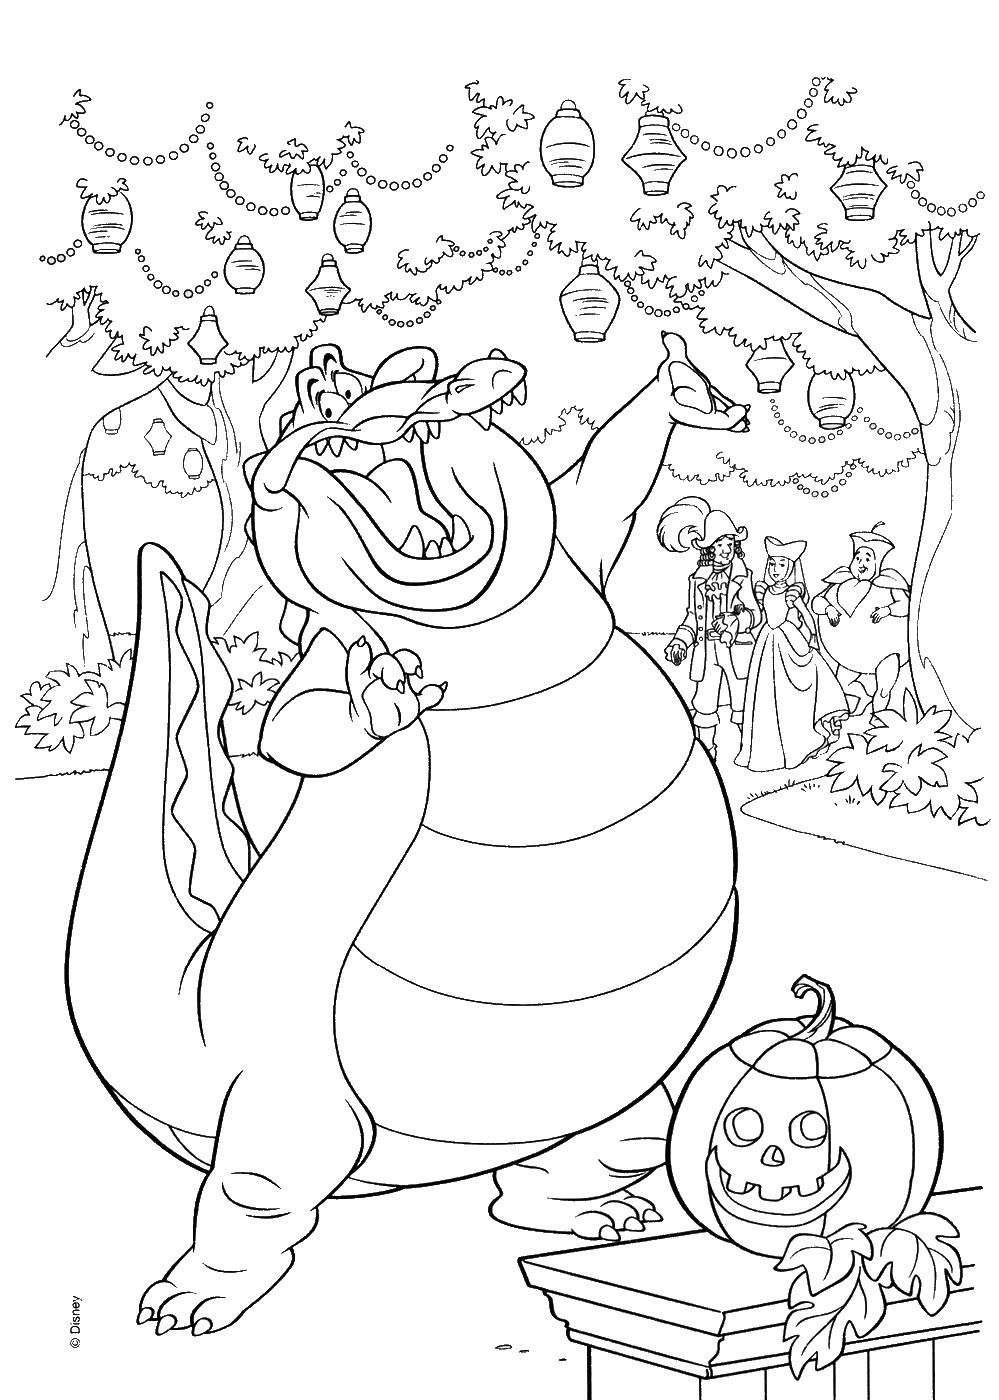 frog and toad coloring pages the princess and the frog coloring pages coloring pages toad and frog